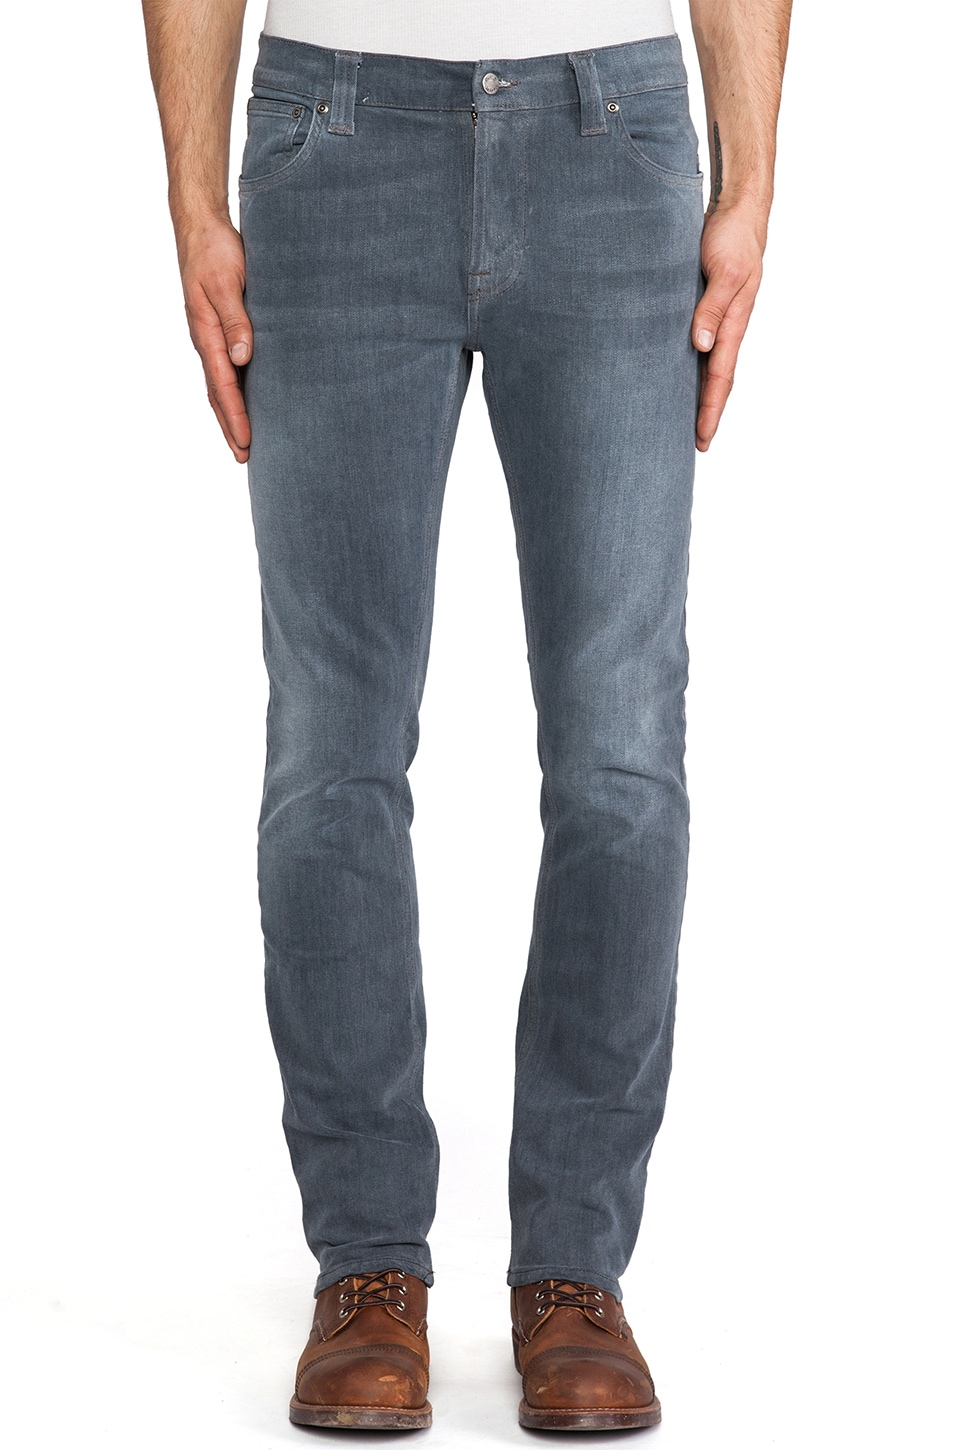 Nudie Jeans Thin Finn in Org. Lighter Shade